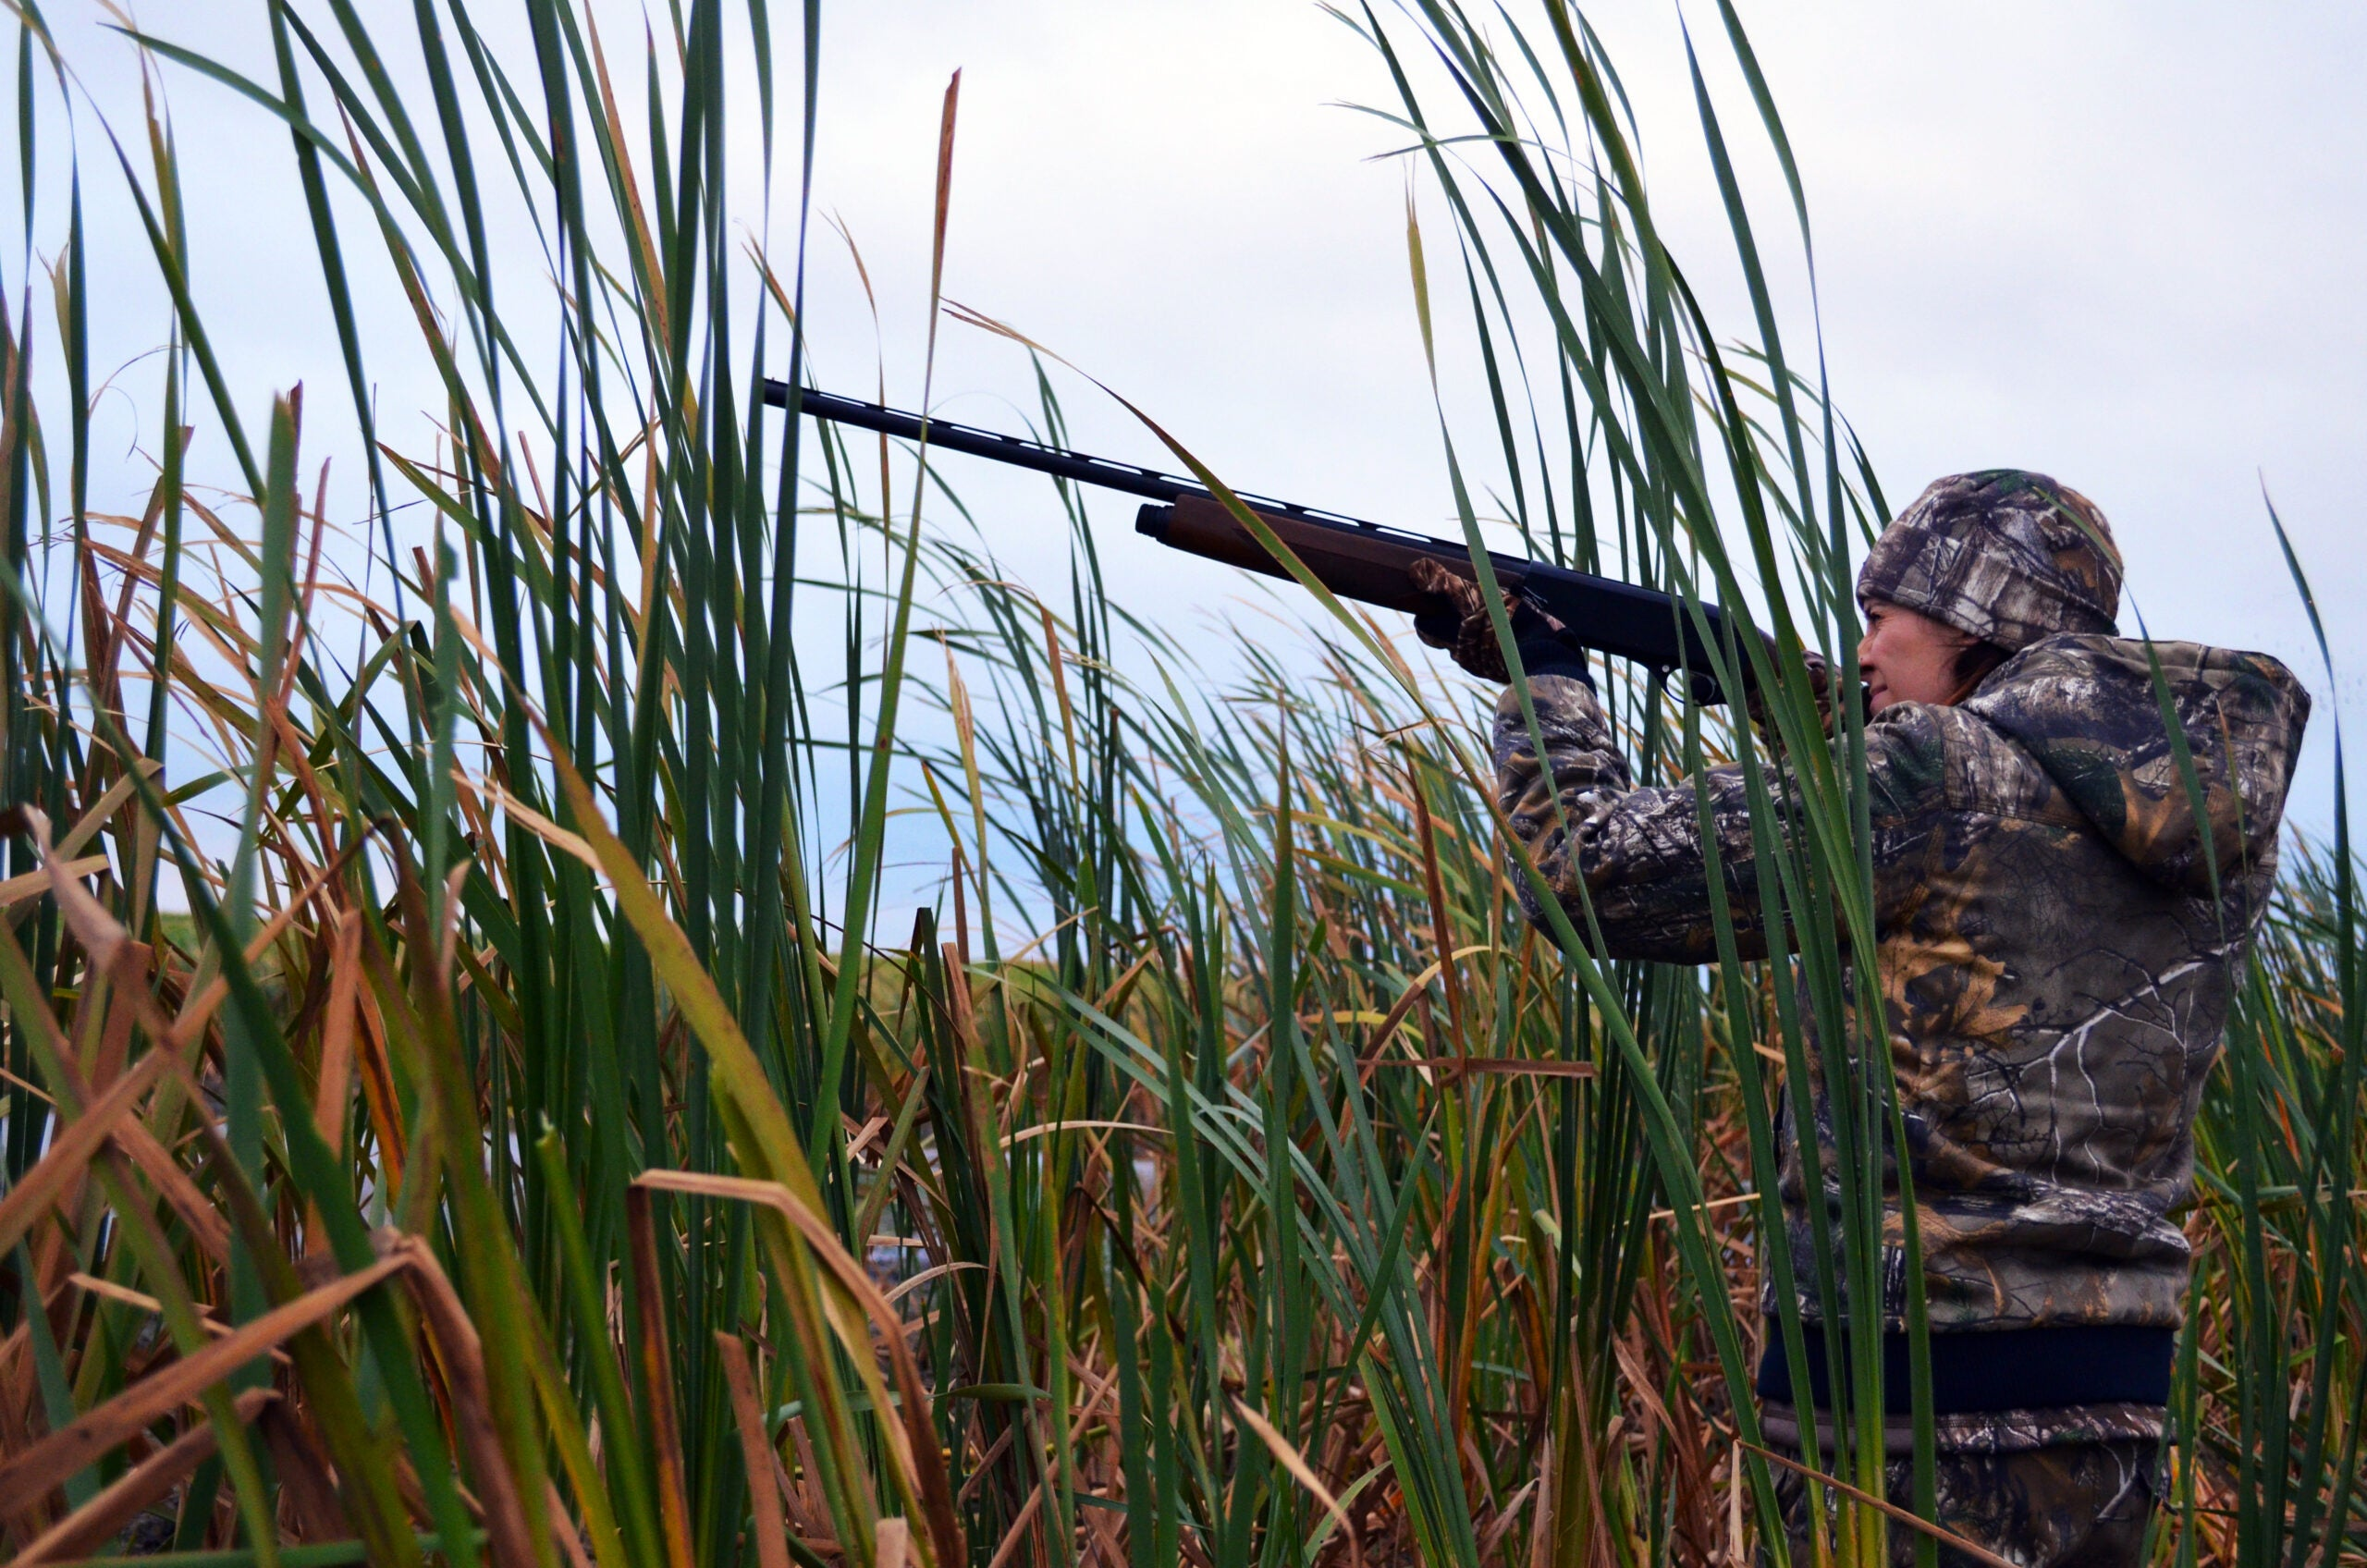 Number of Female Bird Hunters on the Rise